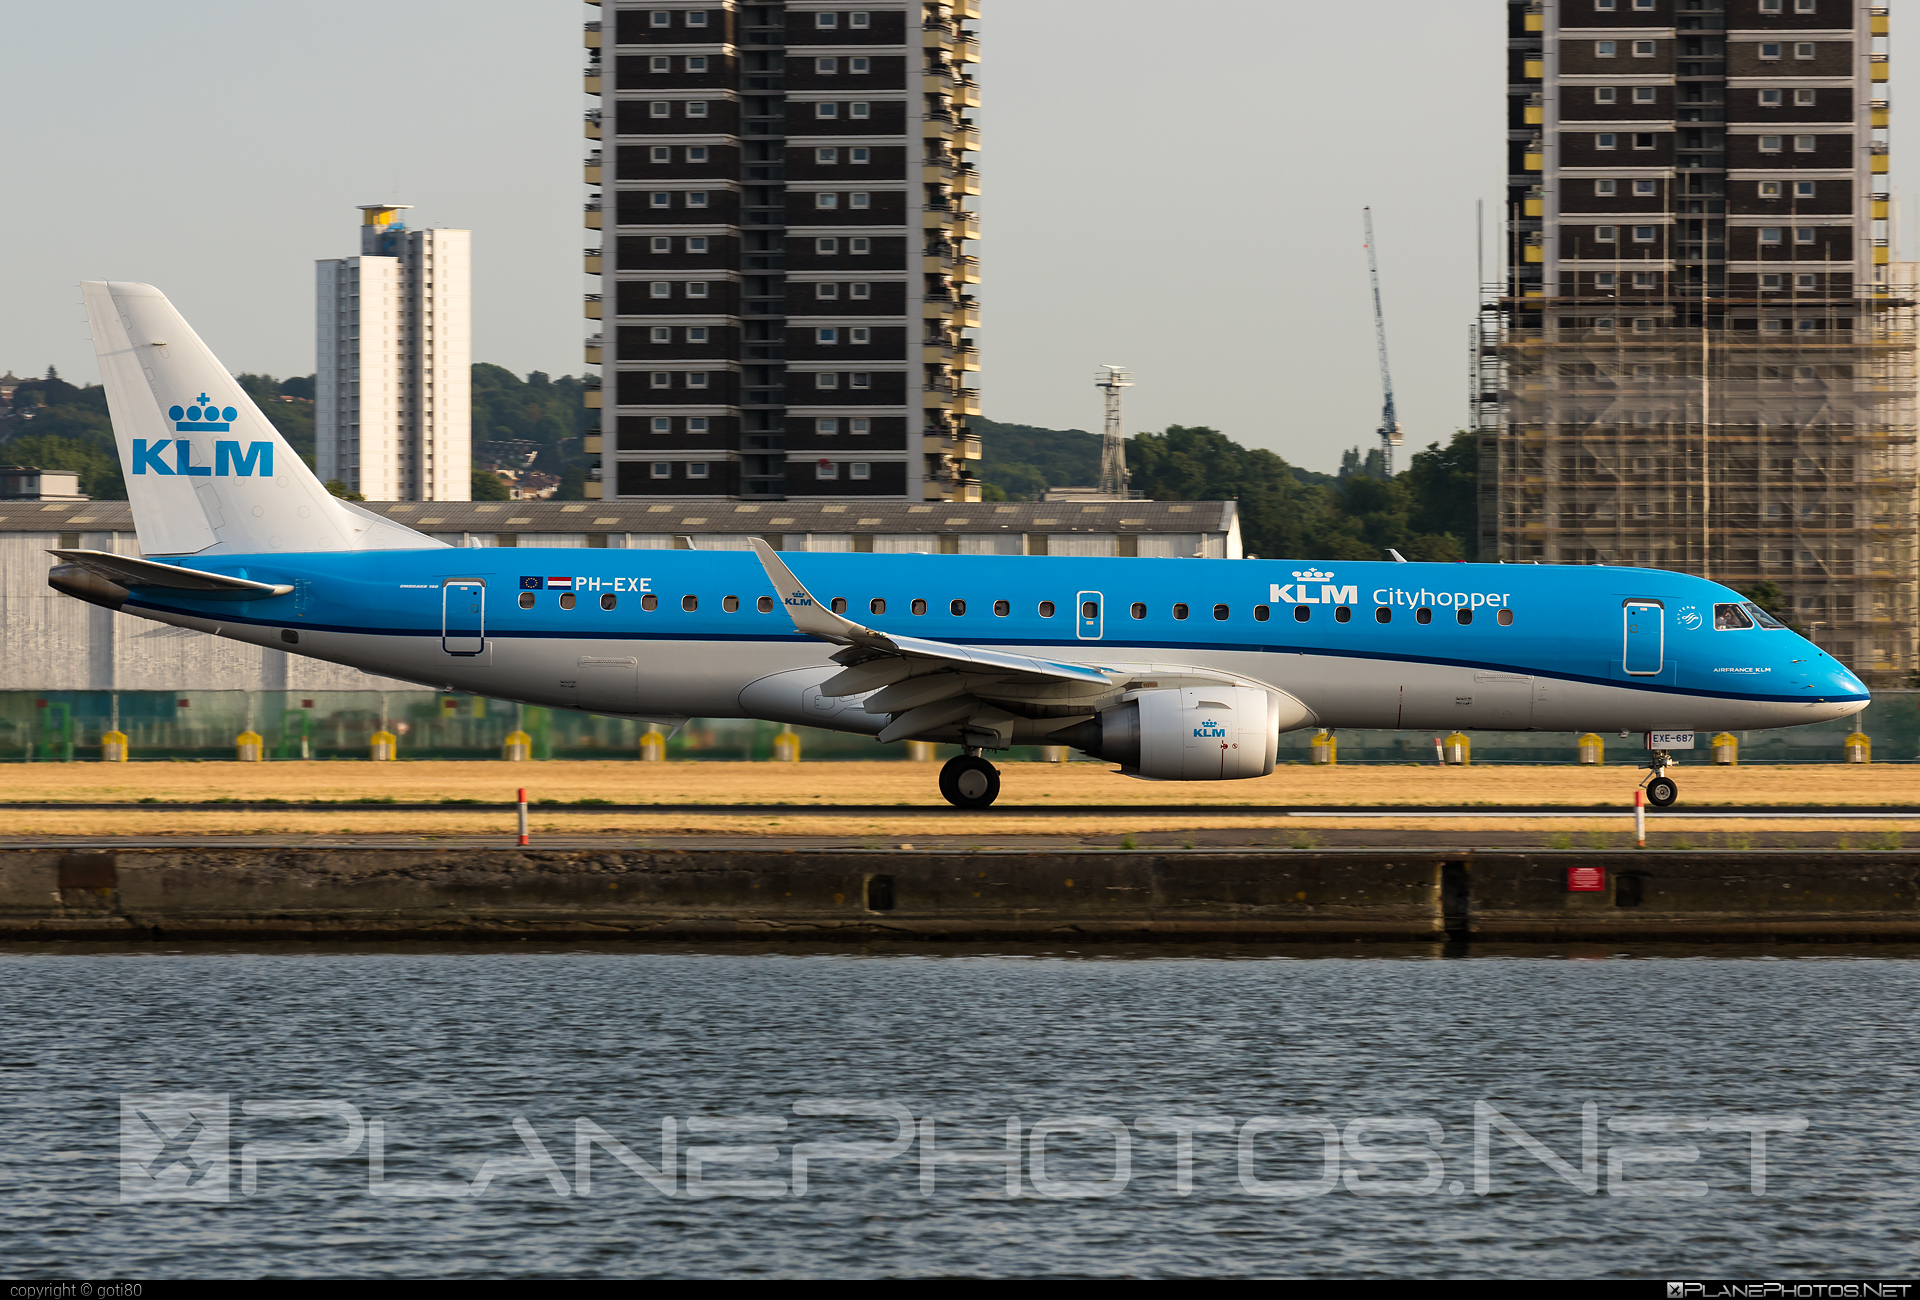 Embraer 190-100STD - PH-EXE operated by KLM Cityhopper #e190 #embraer #embraer190 #embraer190std #klm #klmcityhopper